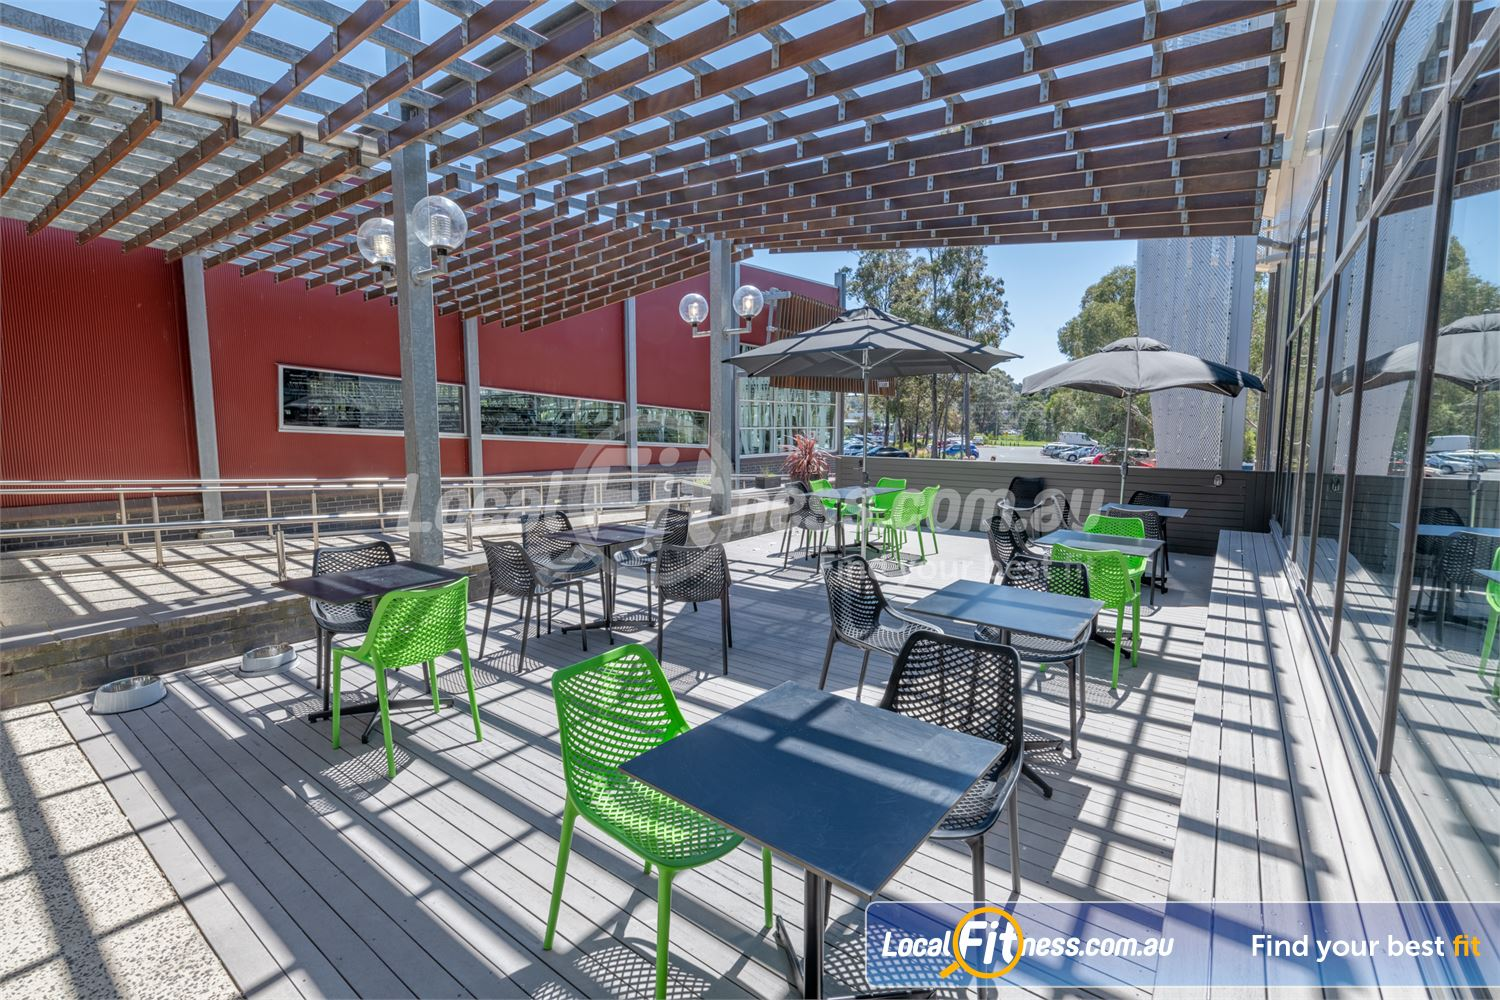 Eltham Leisure Centre Eltham The outdoor members lounge area is the perfect place to be on a sunny day.